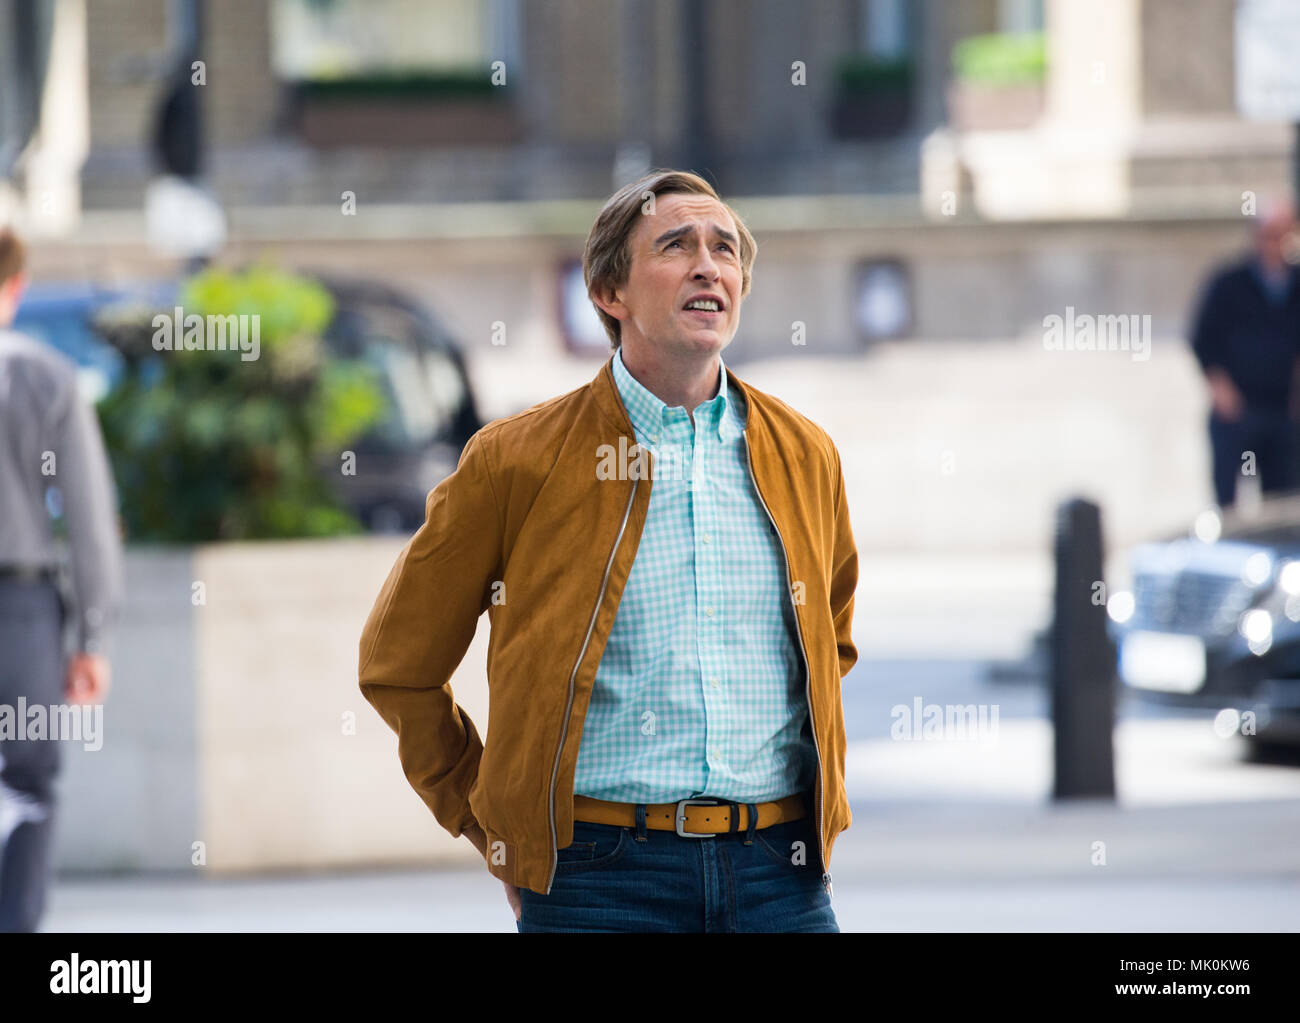 Filming of Alan Partridge, played by actor Steve Coogan, a parody of British Television personalities, as an inept television and radio presenter - Stock Image